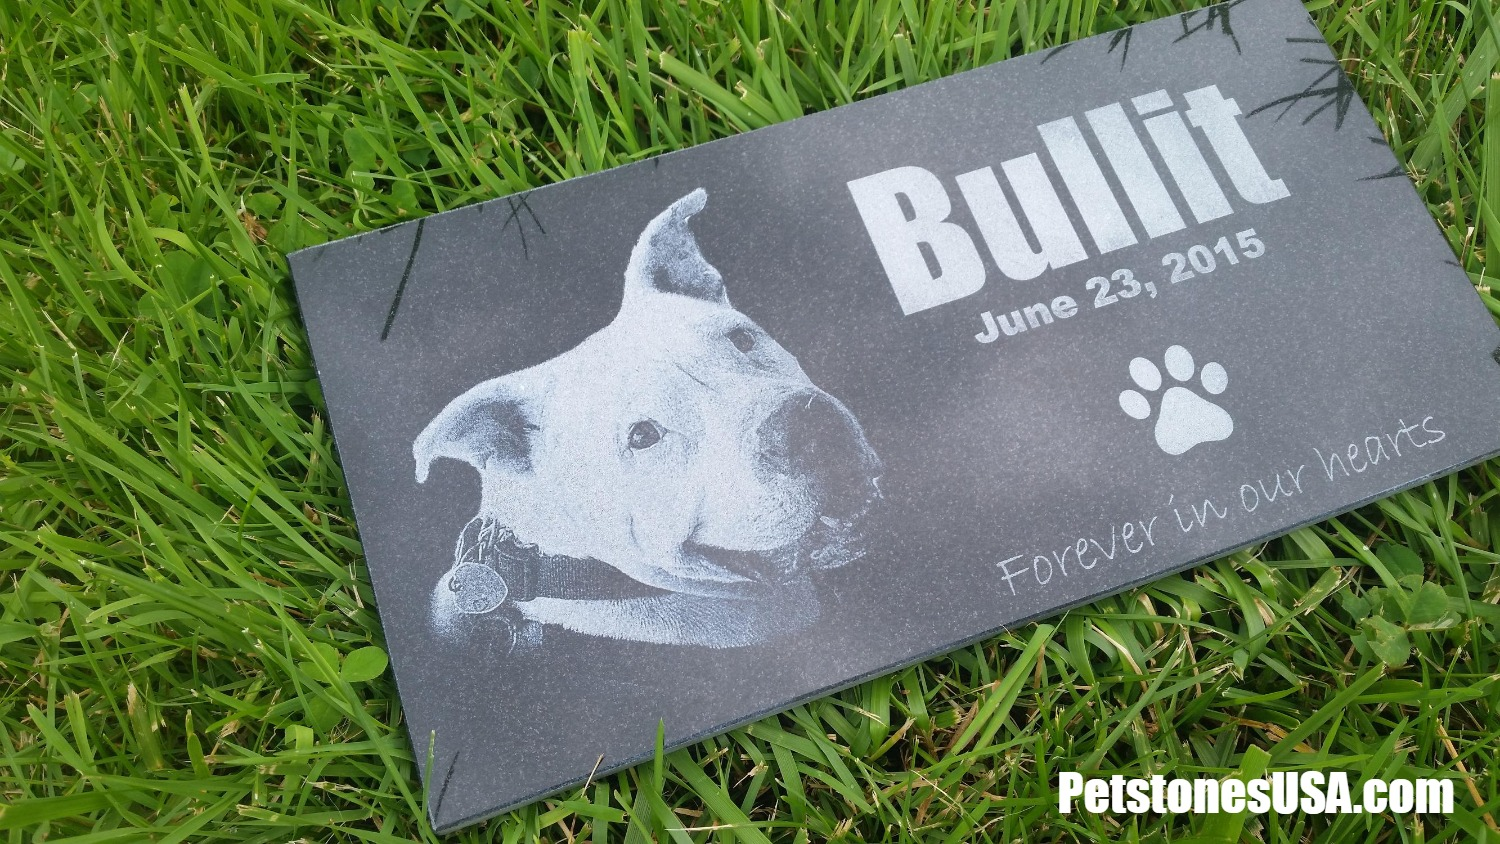 Pitbull dog memorial grave marker